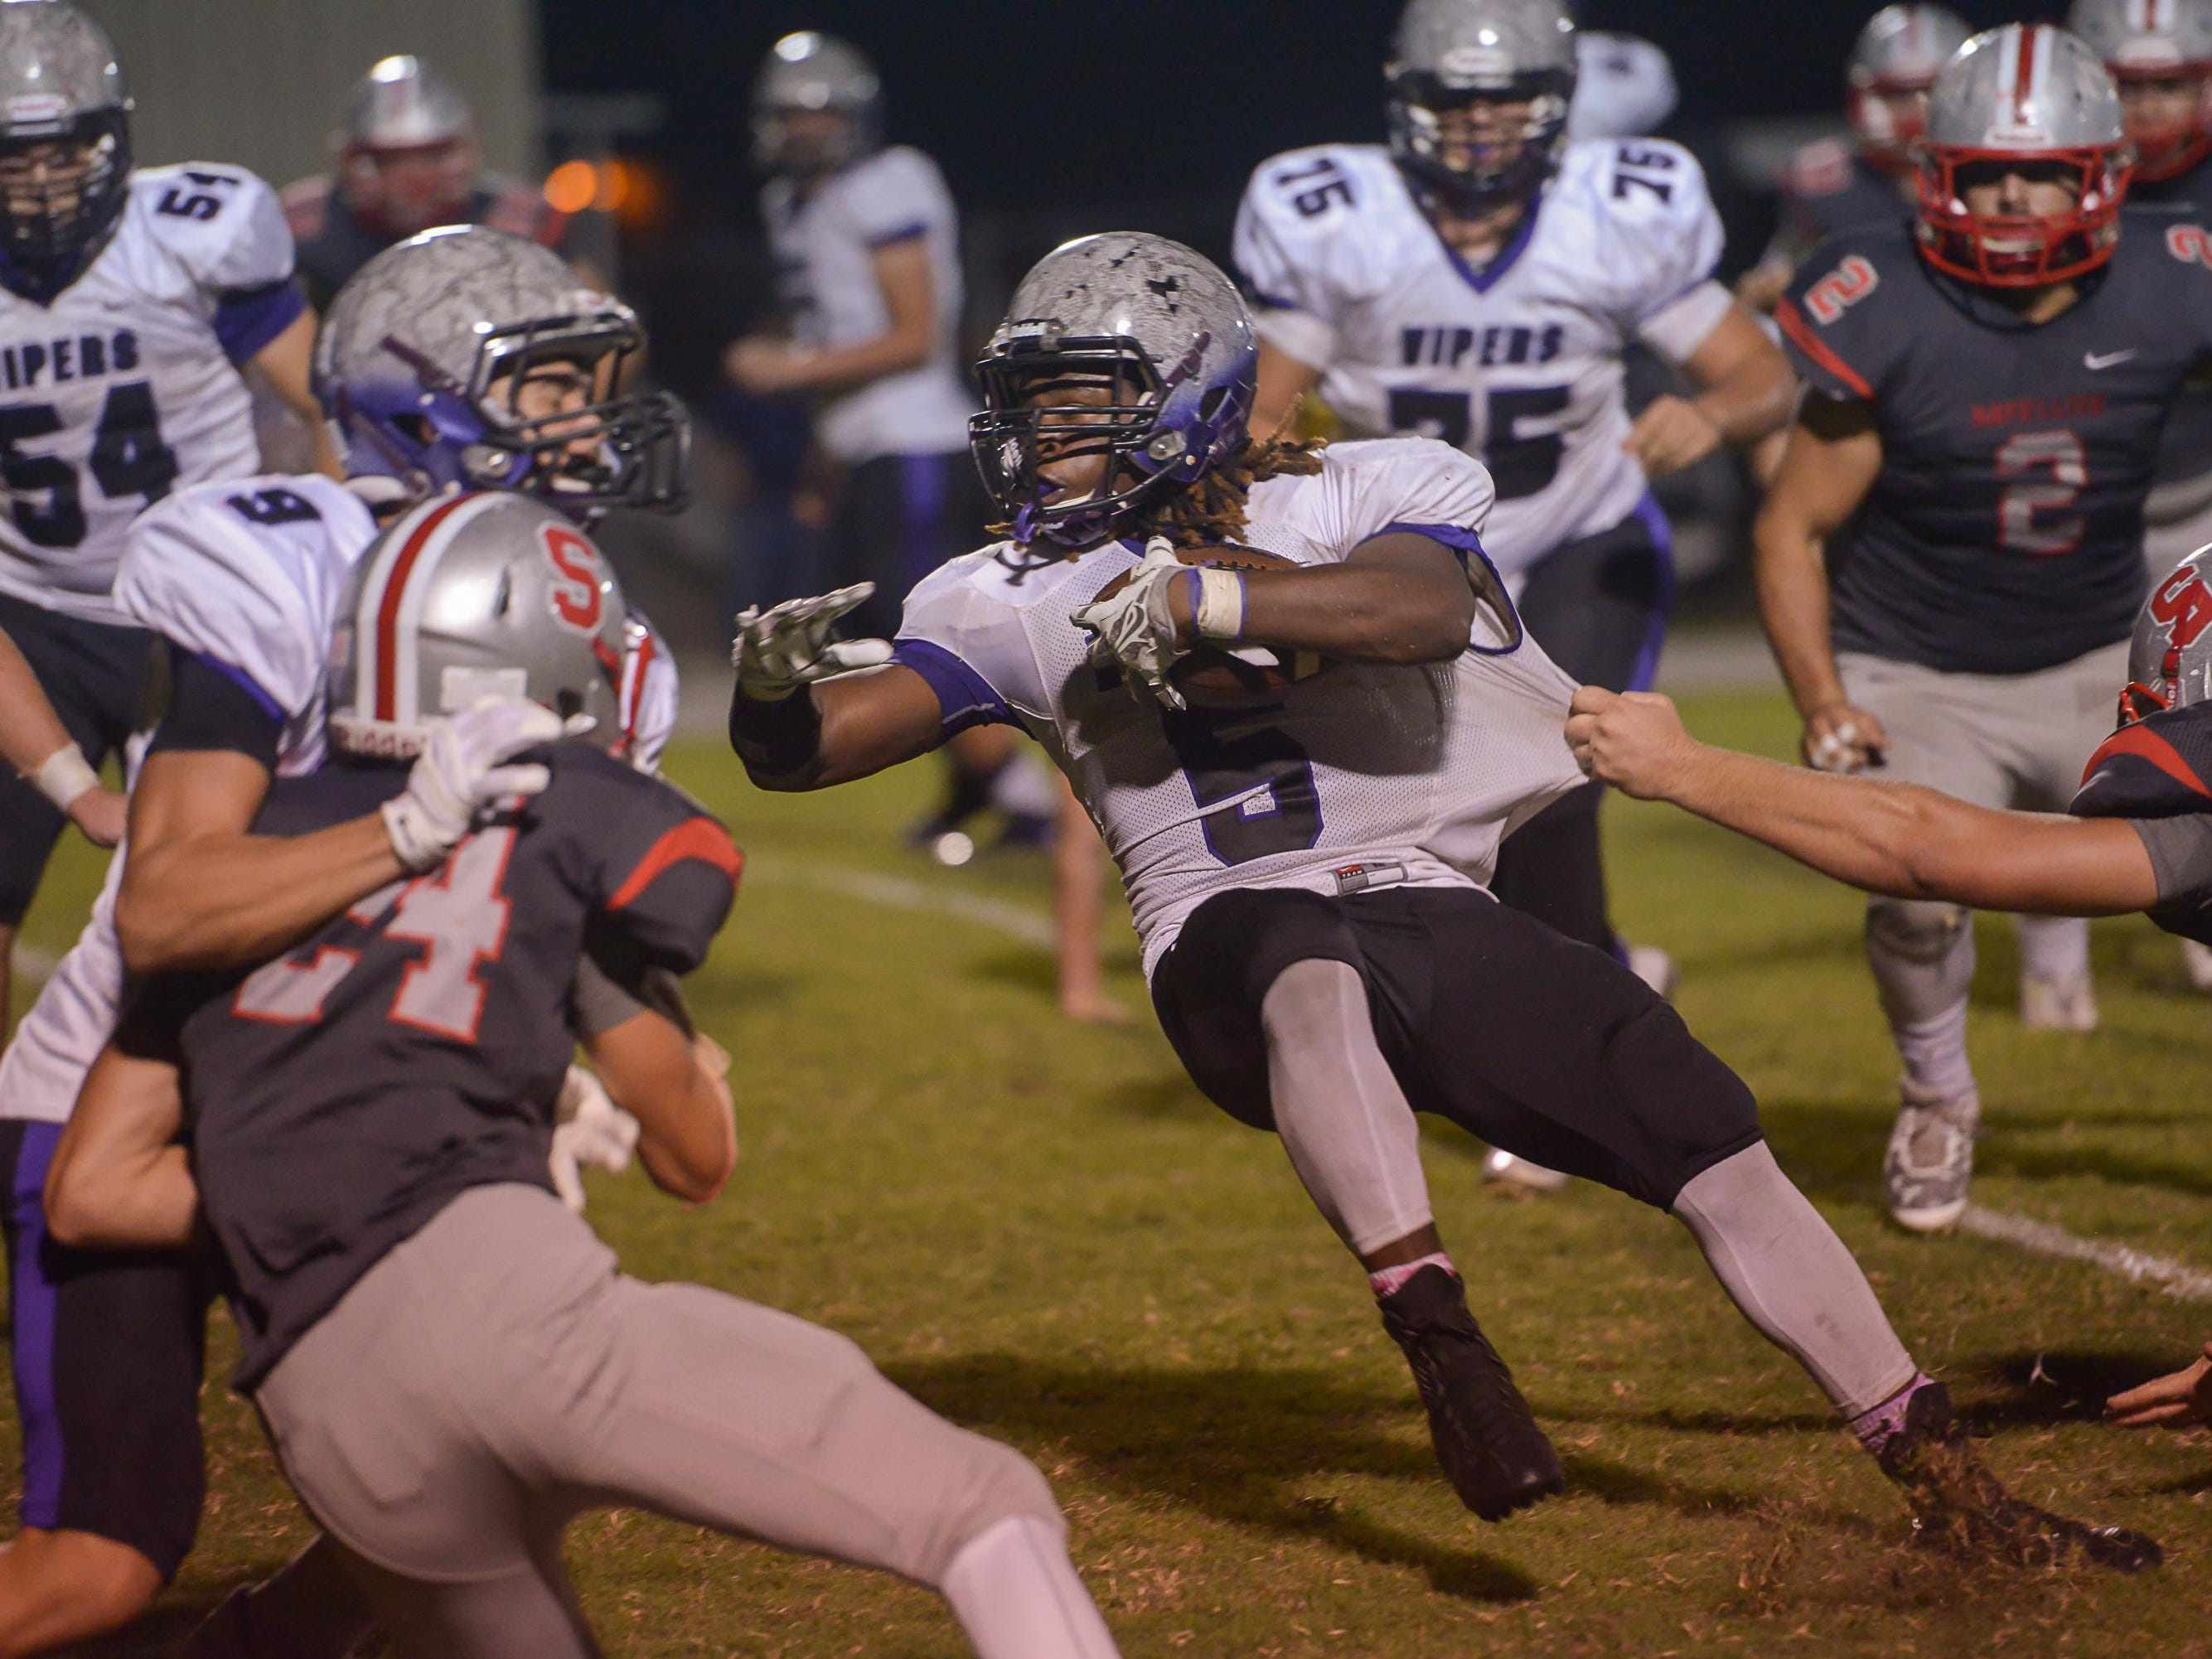 Space Coast's Cornelius Fulton fights for yards against Satellite's defense.